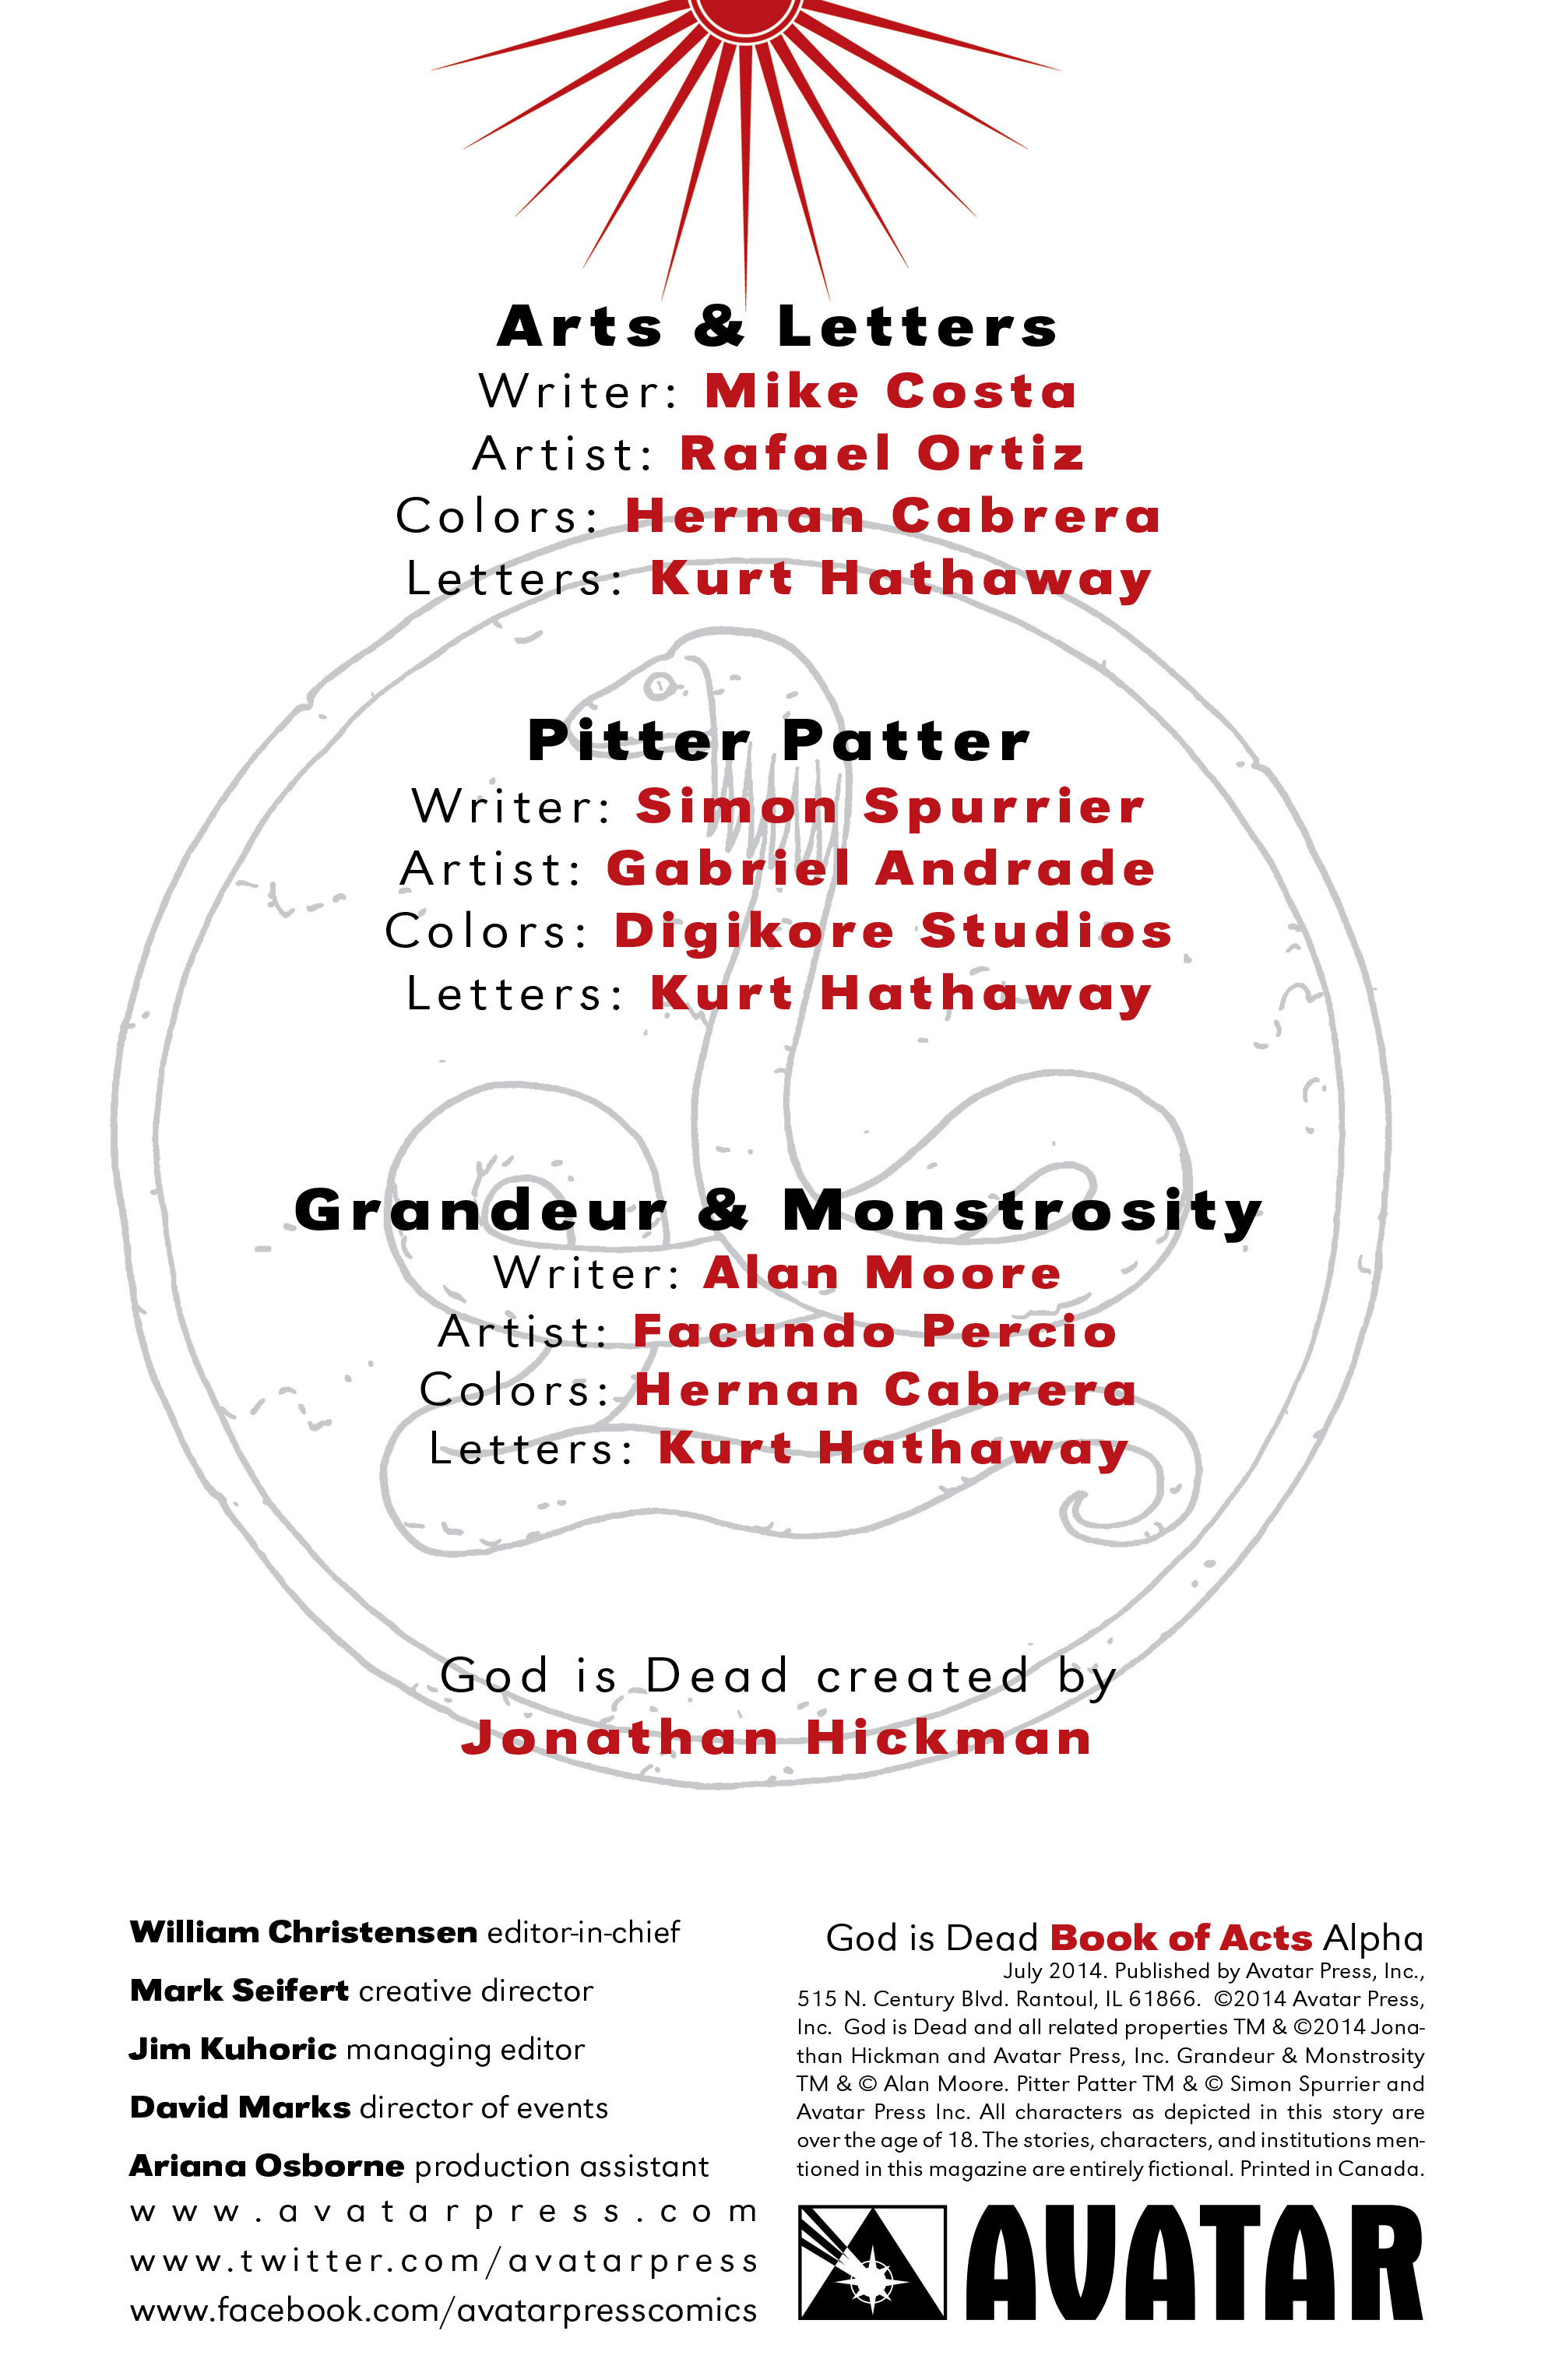 Read online God is Dead: Book of Acts comic -  Issue # Alpha - 9